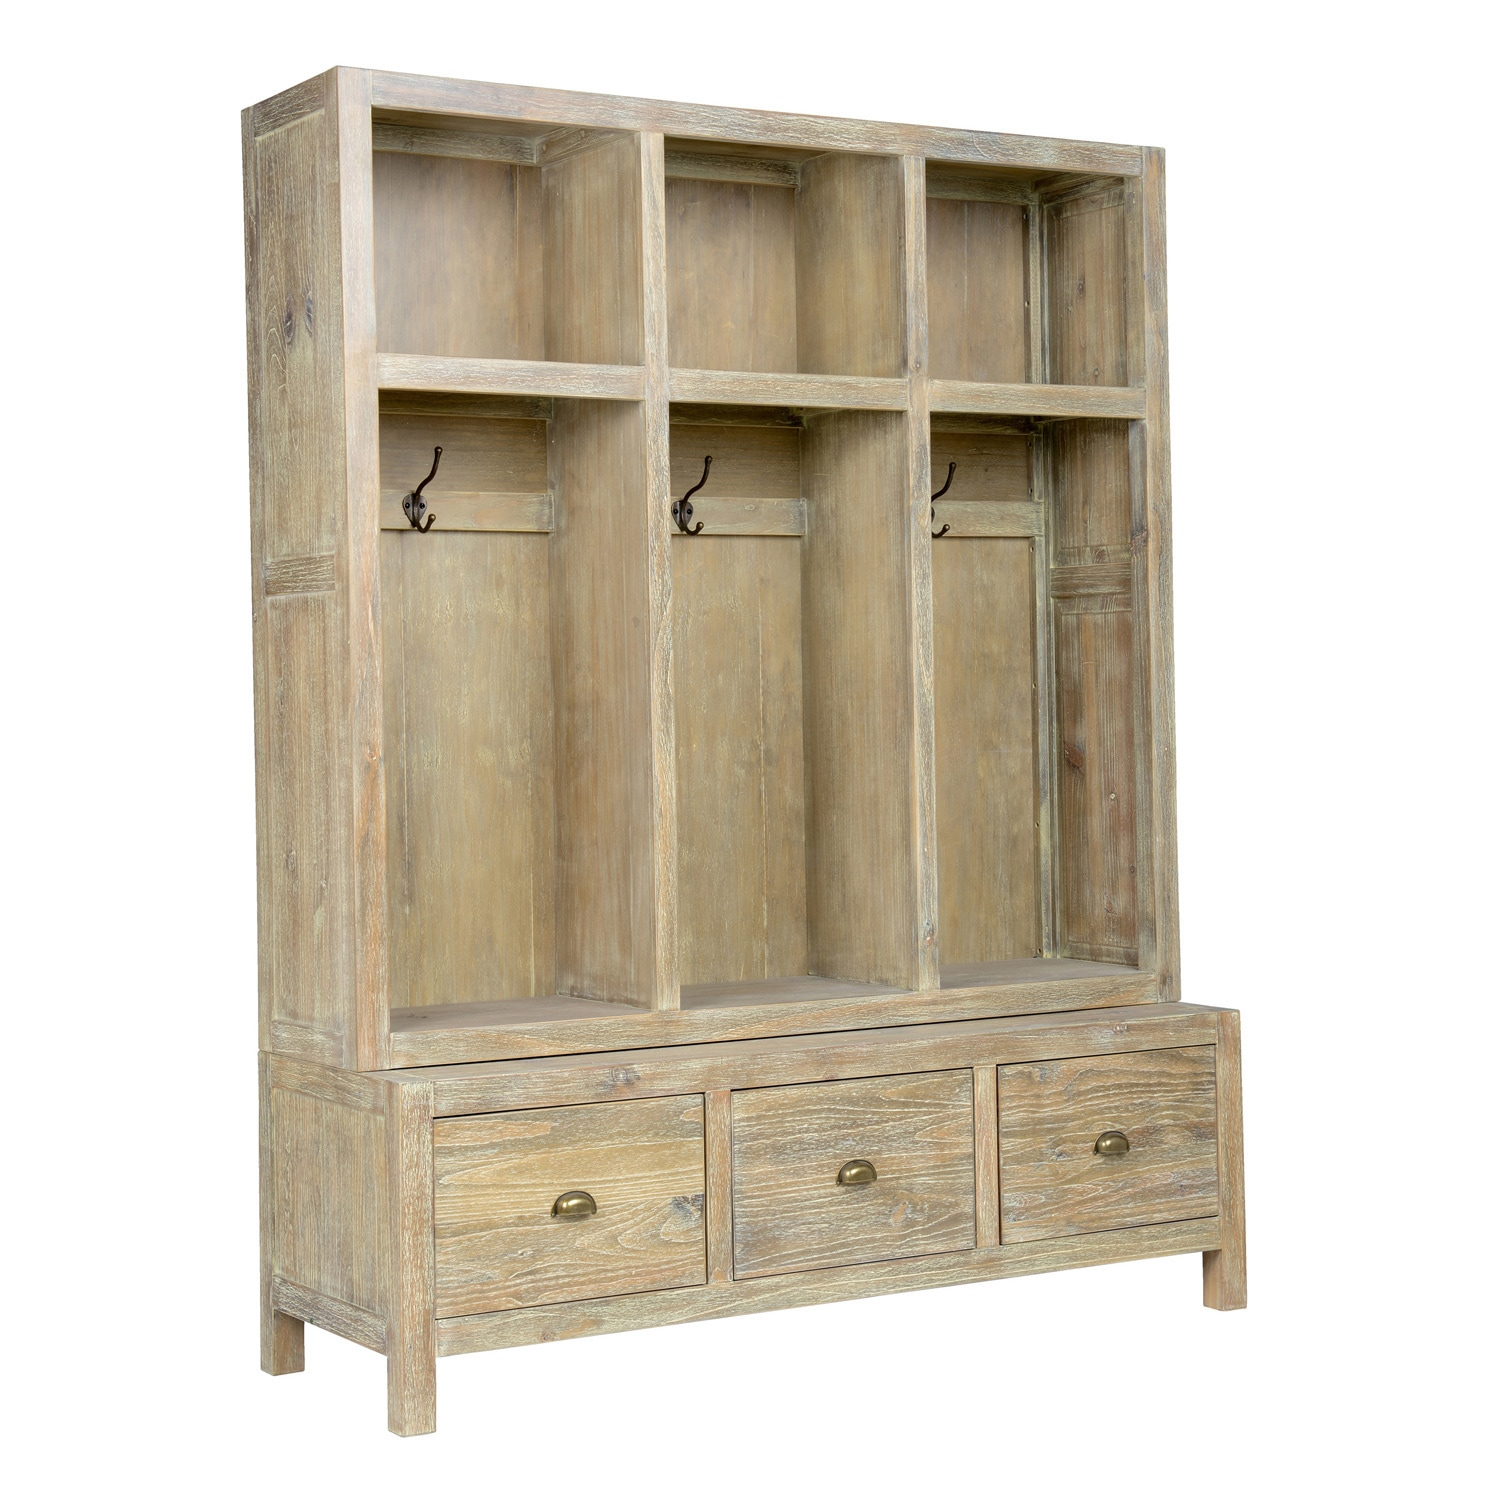 Sierra Hand Crafted Taupe Entryway Storage Bench by Kosas Home - Free  Shipping Today - Overstock.com - 22458665